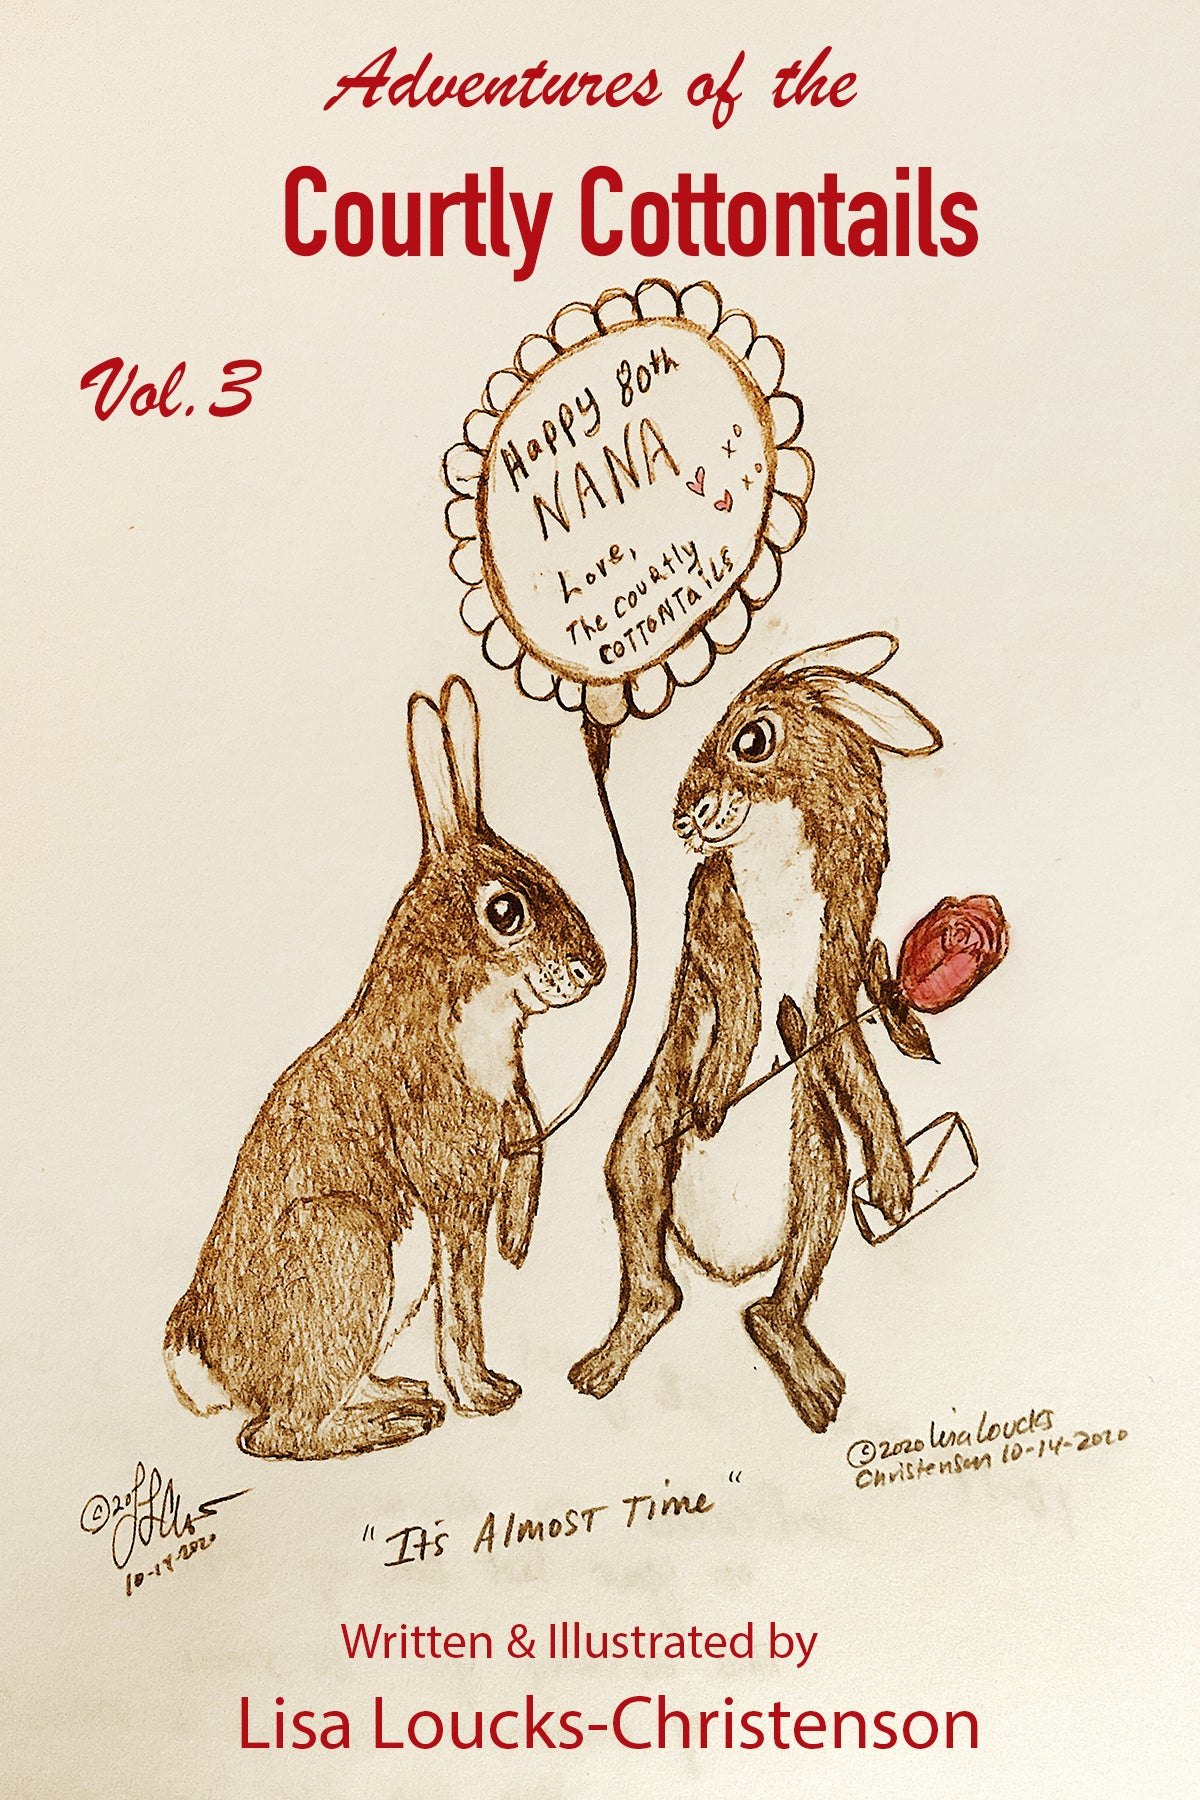 Adventures of the Courtly Cottontails, Vol. 3